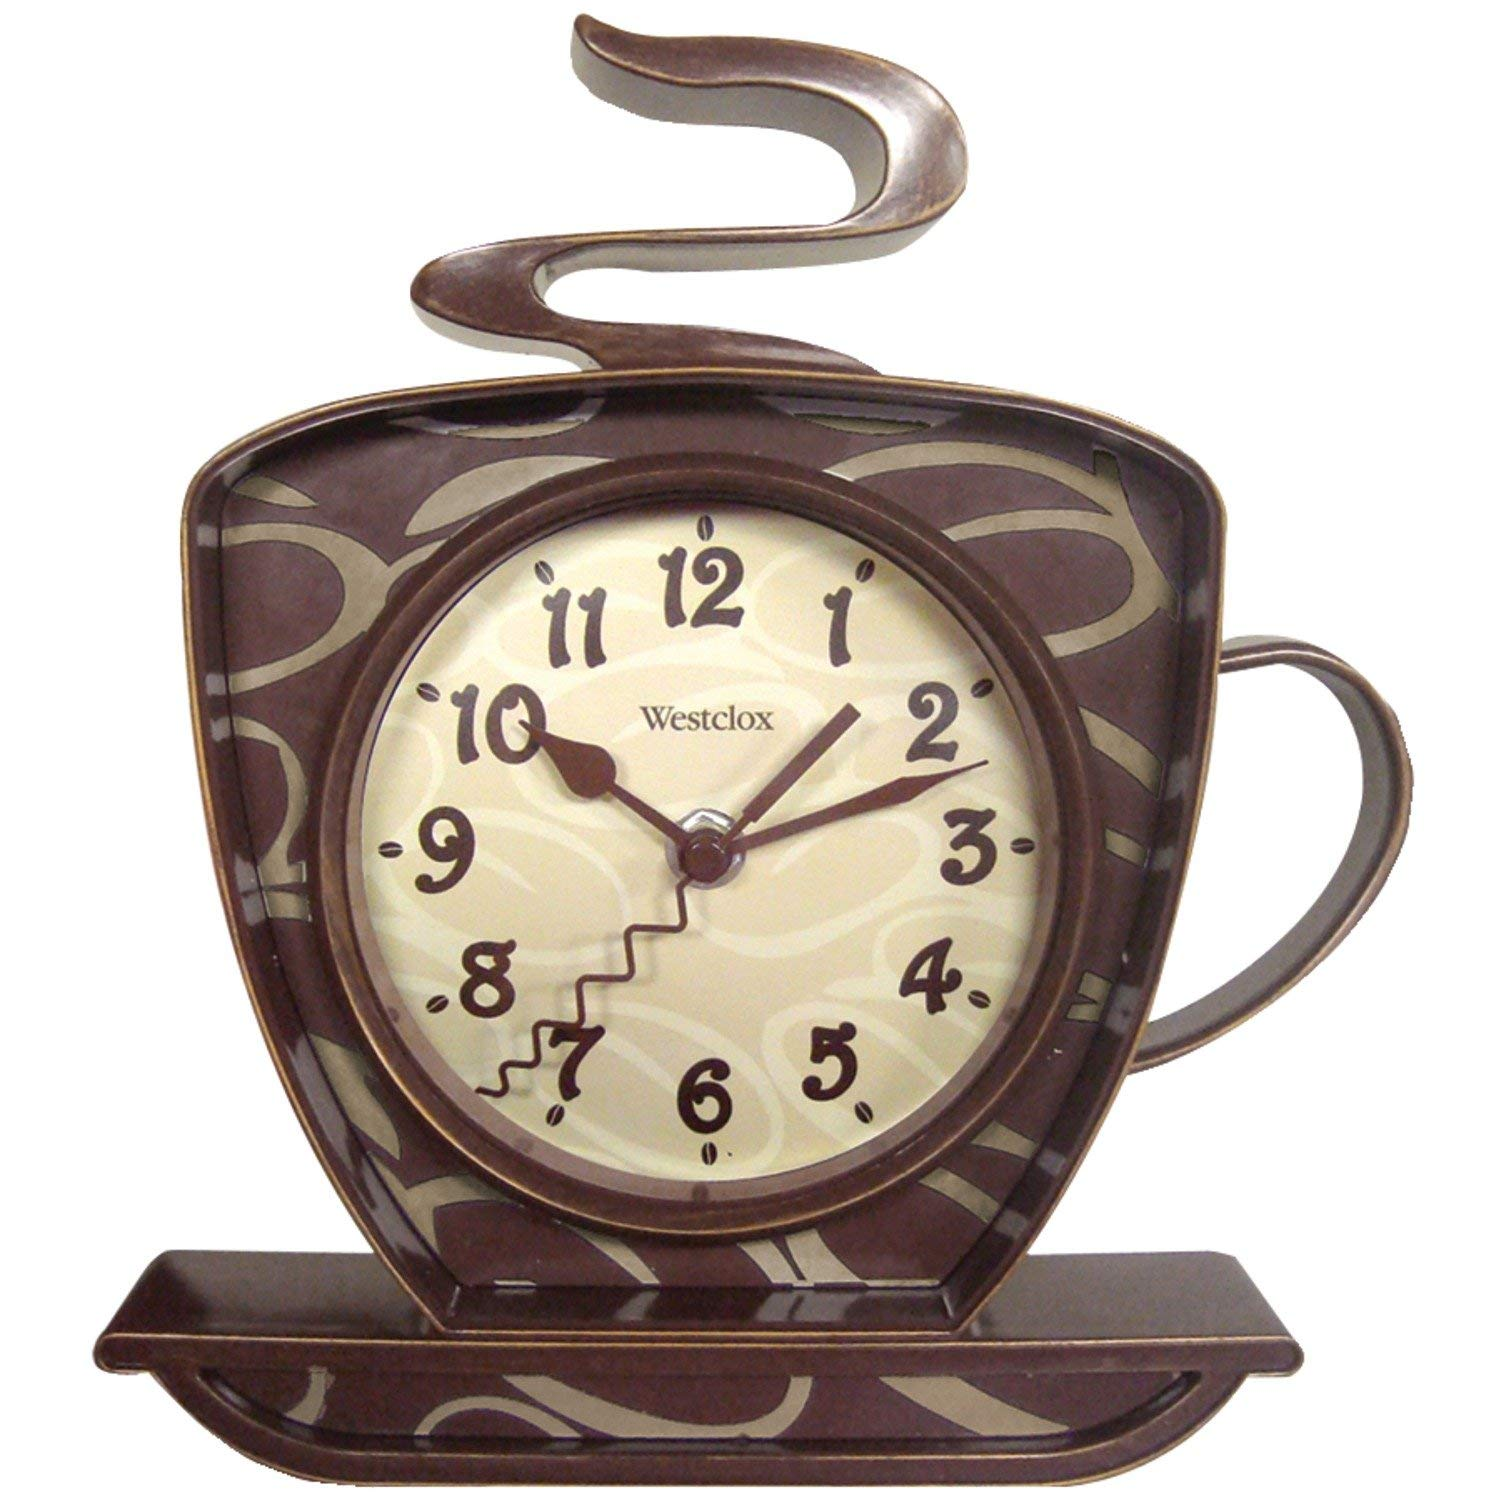 Westclox 32038 Coffee Time 3-D  find the details & customer review of my 15 most popular & cute coffee themed kitchen decorations Wall Clock priced: in July 2019 - $7,70 at Amazon.com  Top Product of our Most Popular Coffee Themed Kitchen Decorations